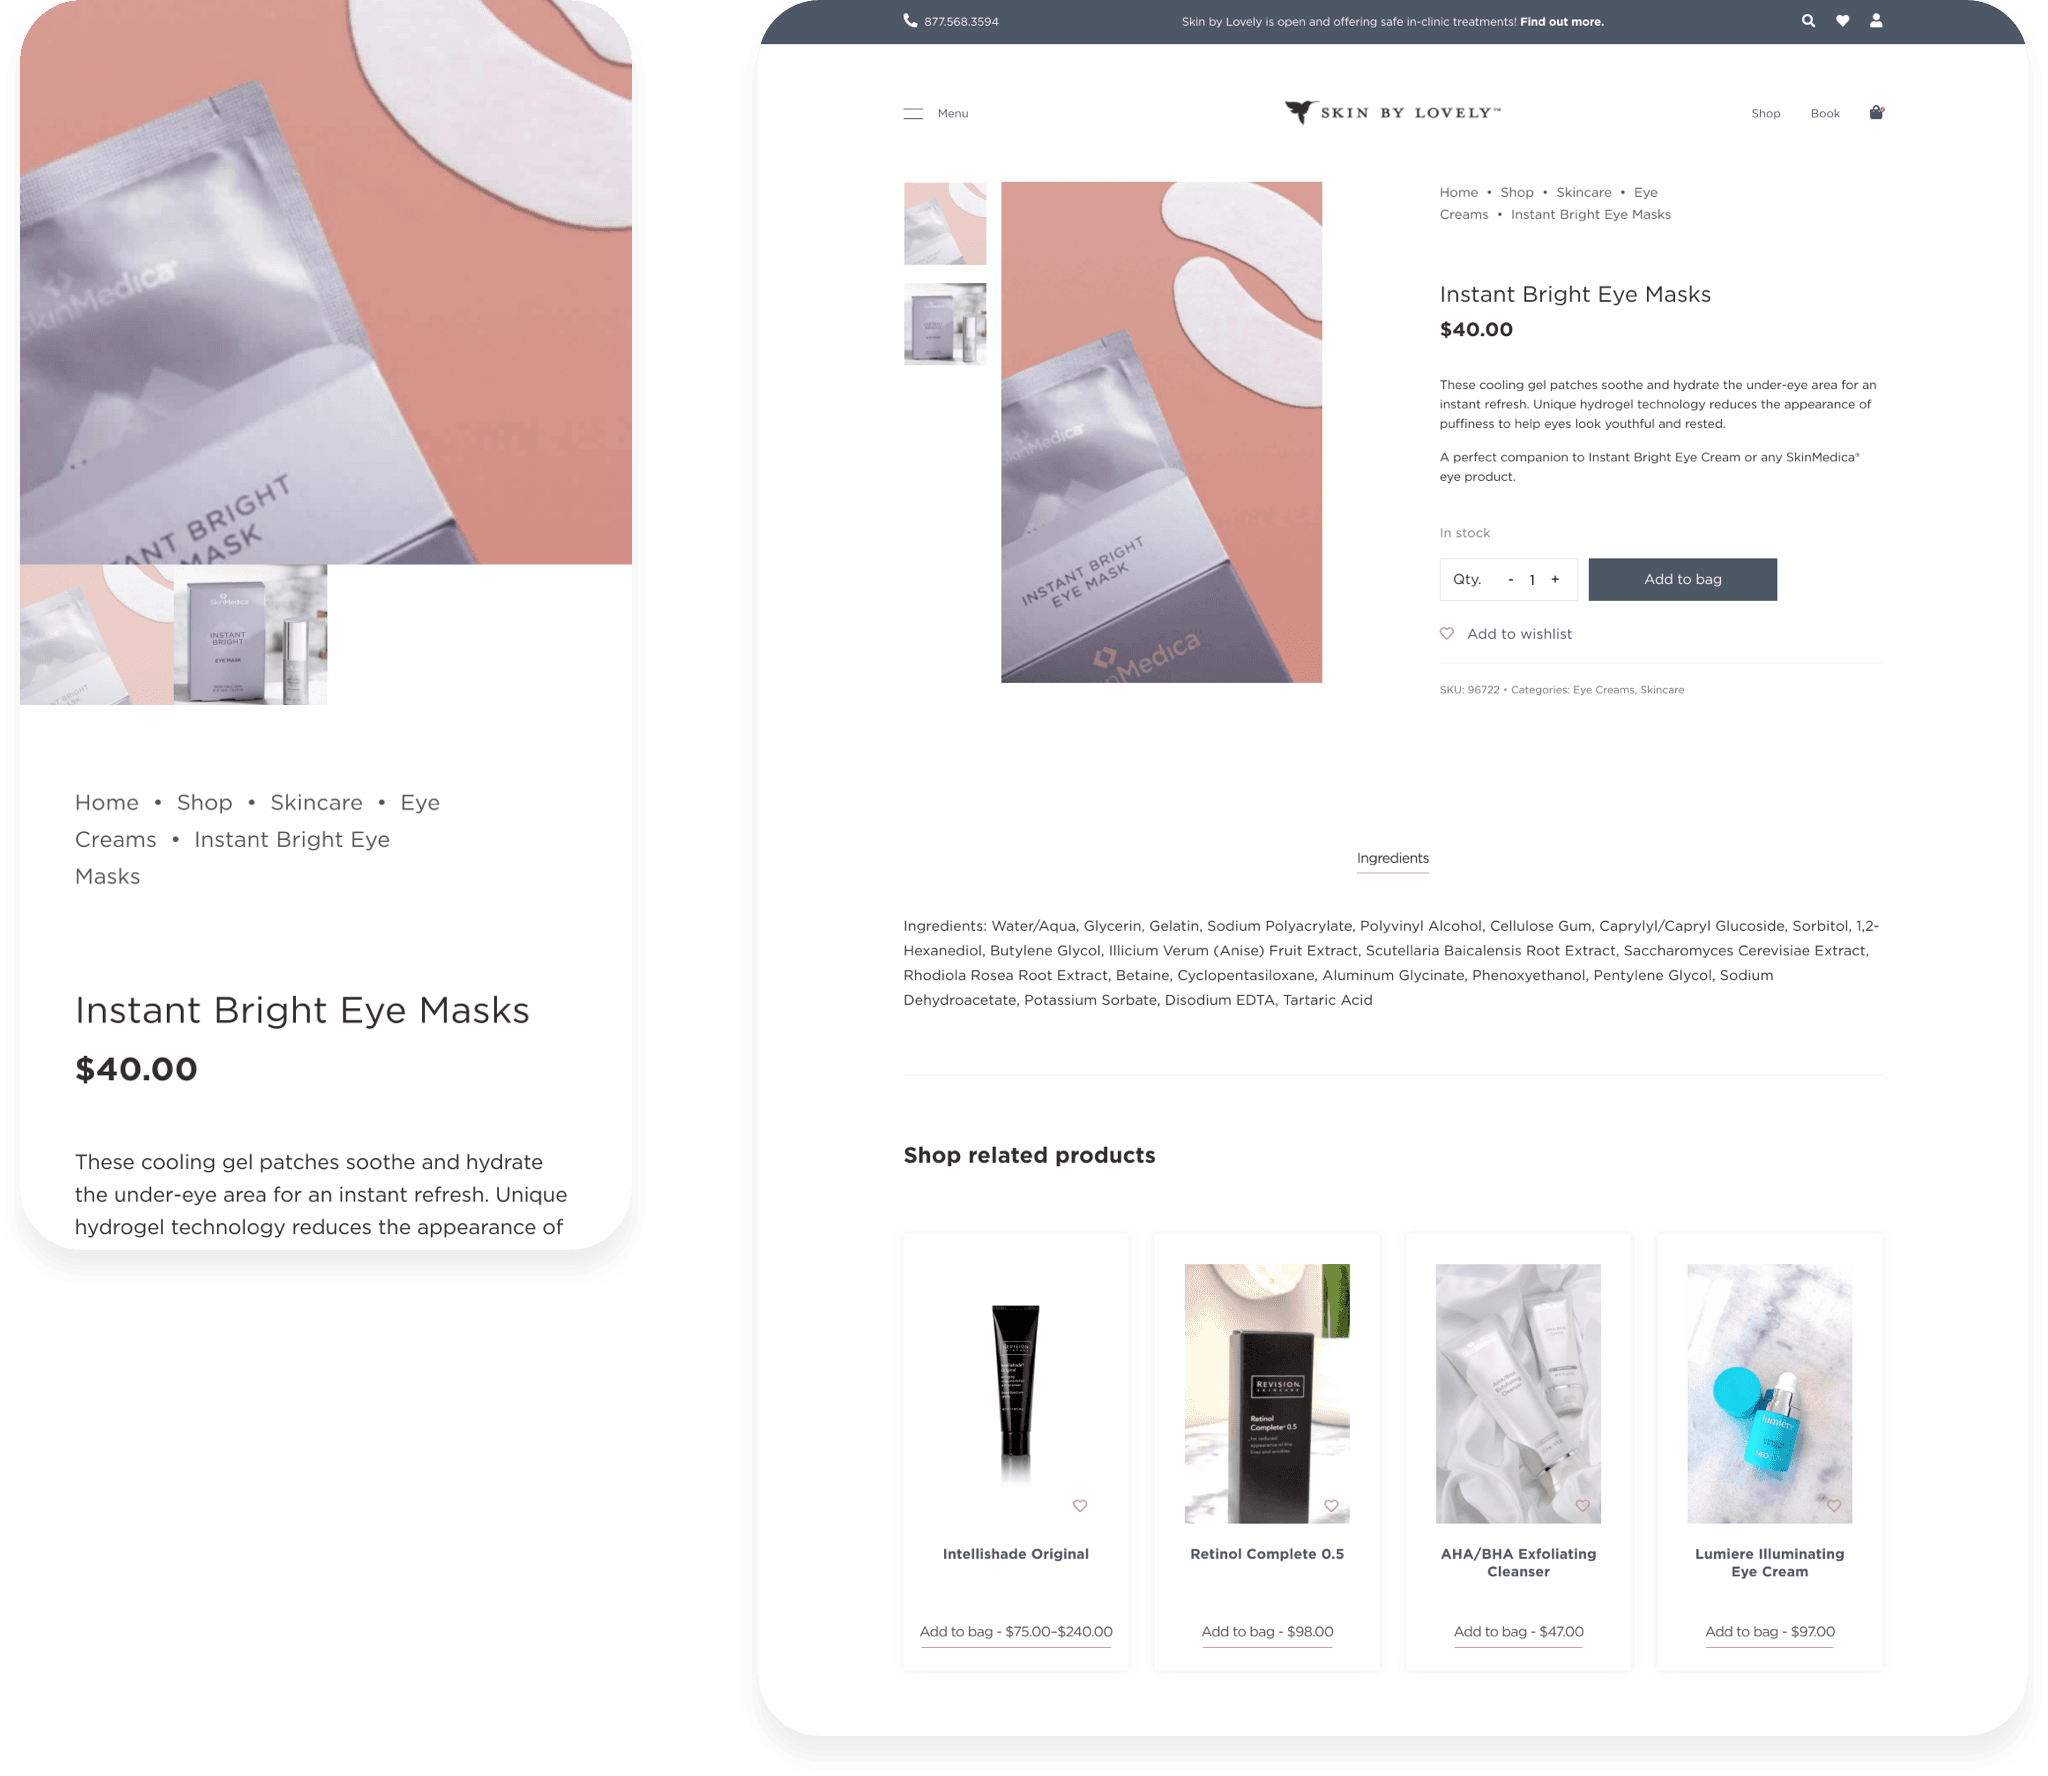 Skin by Lovely Device Comparison